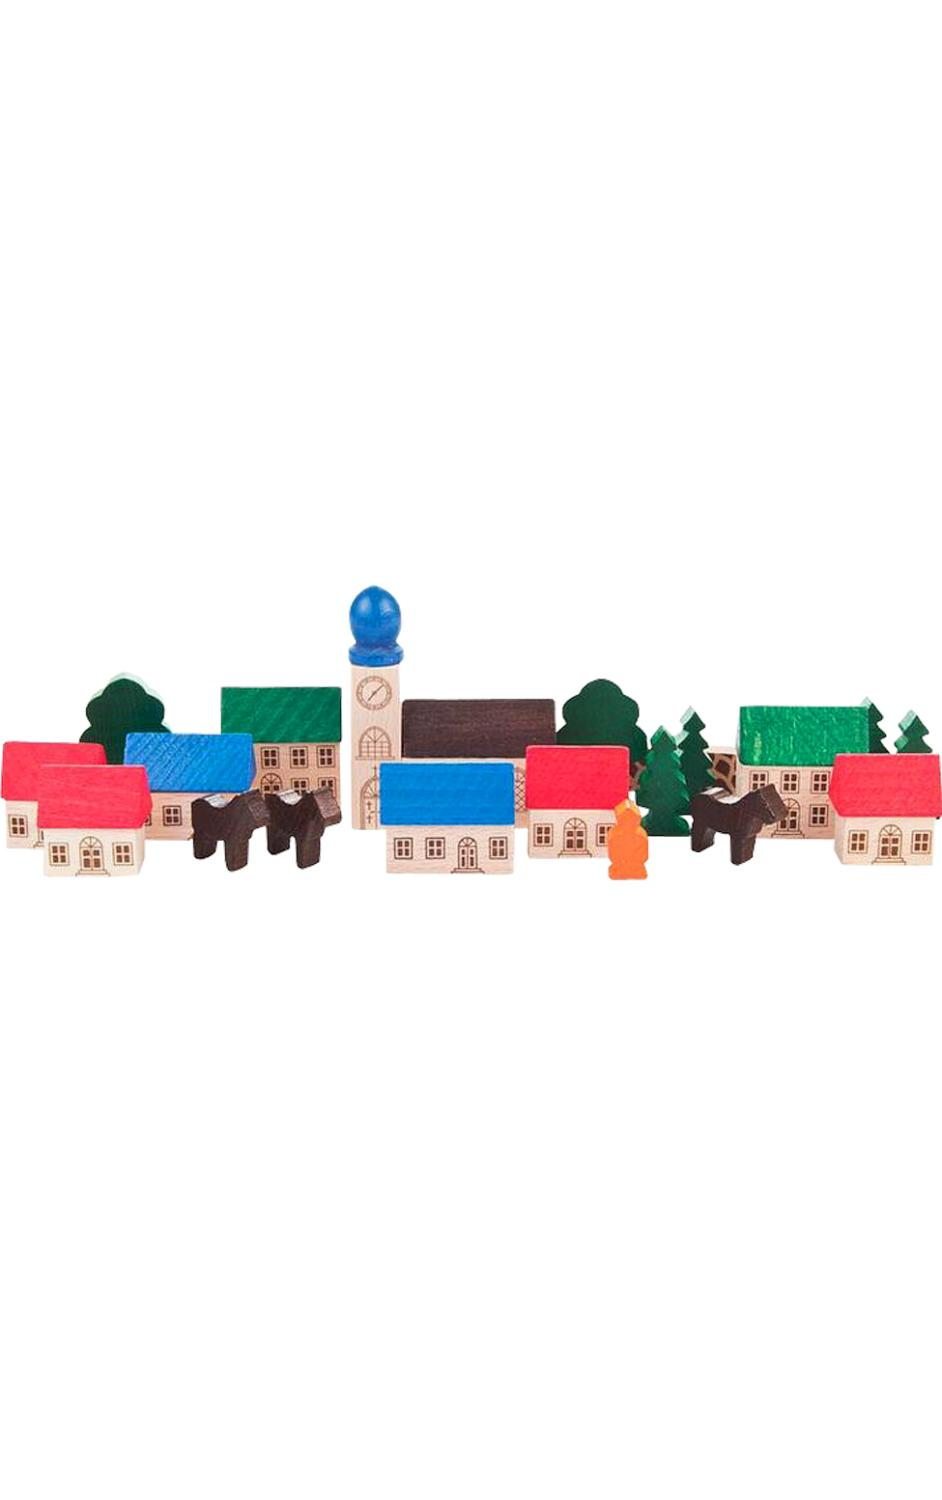 044-004 - Dregeno Wooden Toy - Mountain Village - 3.5